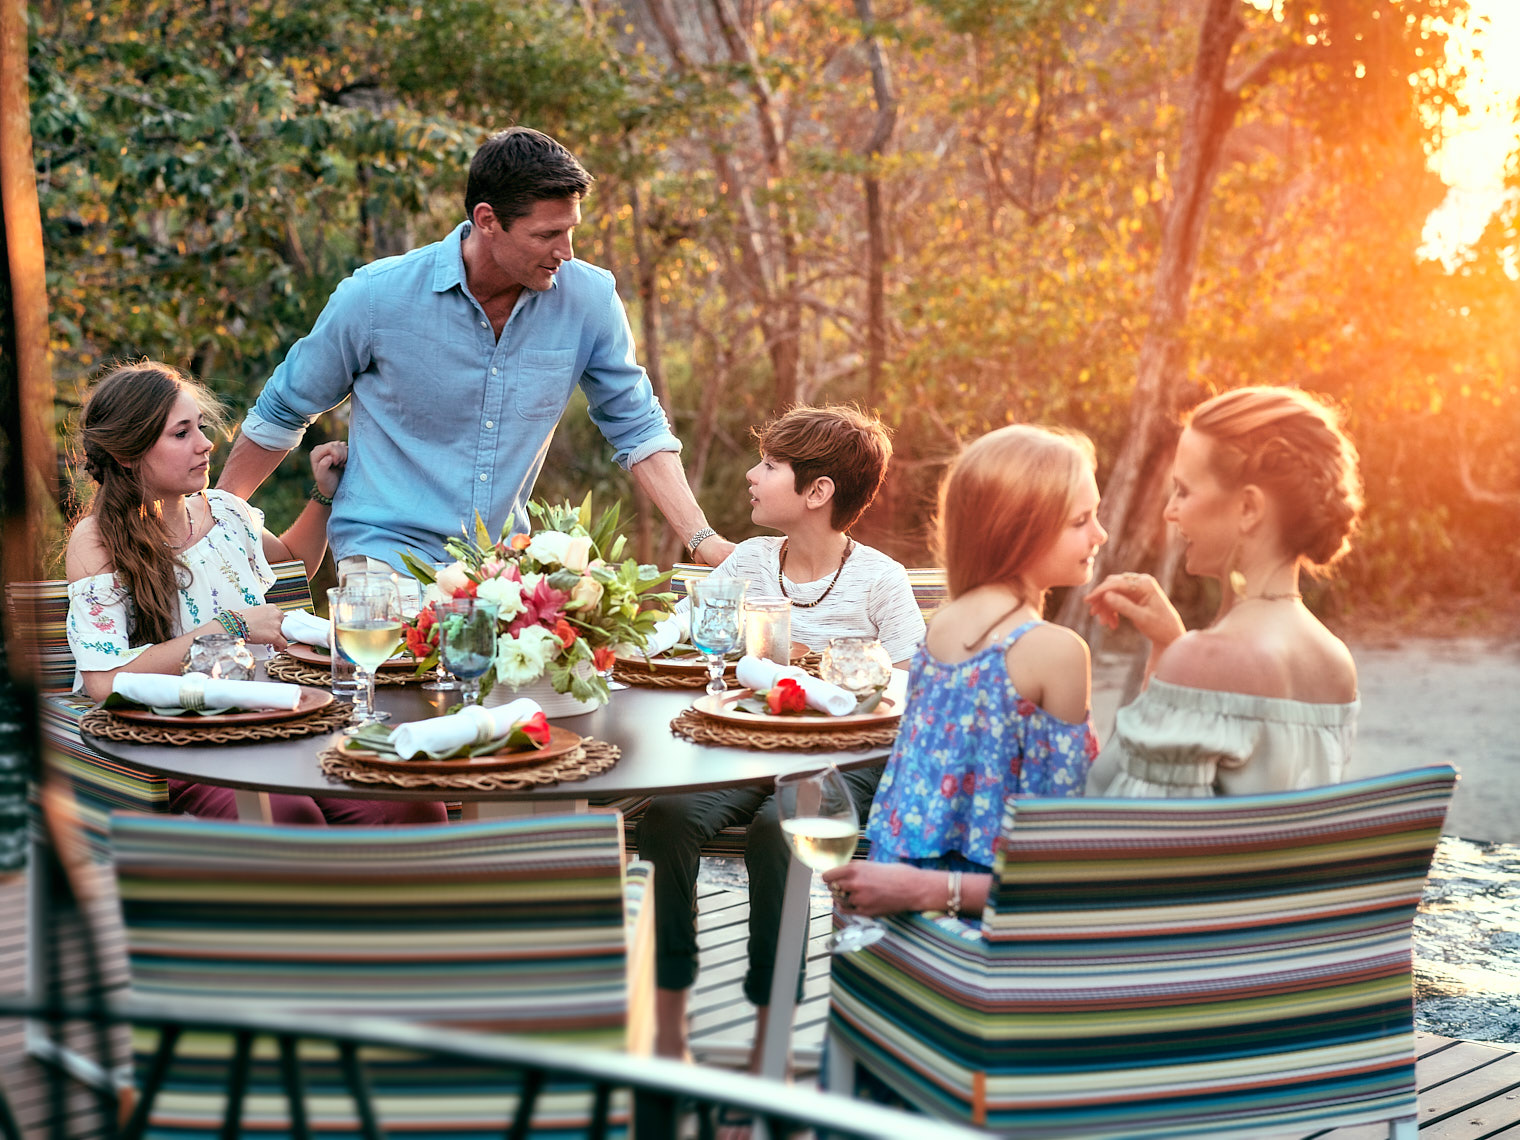 Kevin Steele - a family lifestyle dinner outdoors as the sun sets